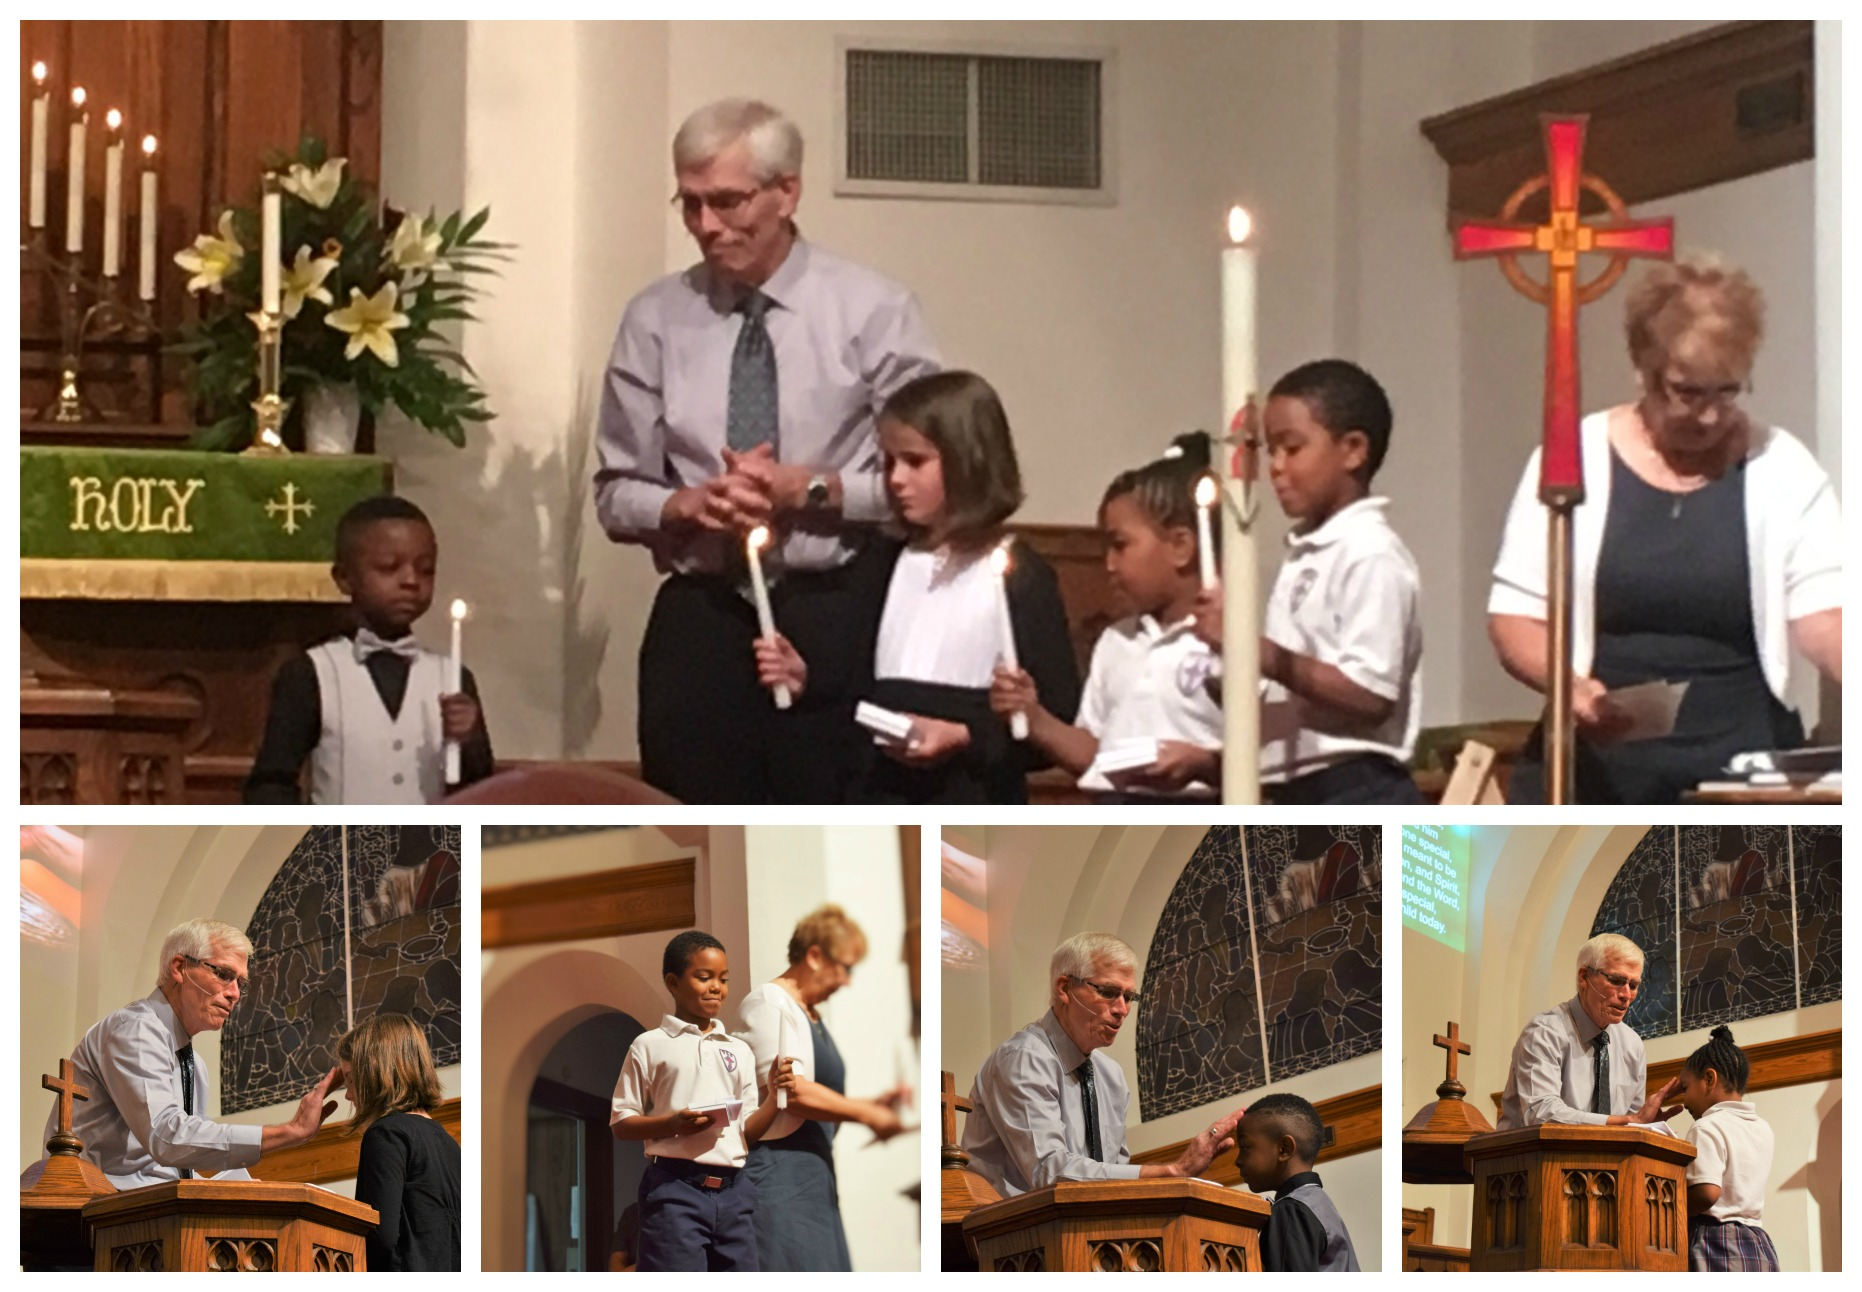 baptisms collage 5 25